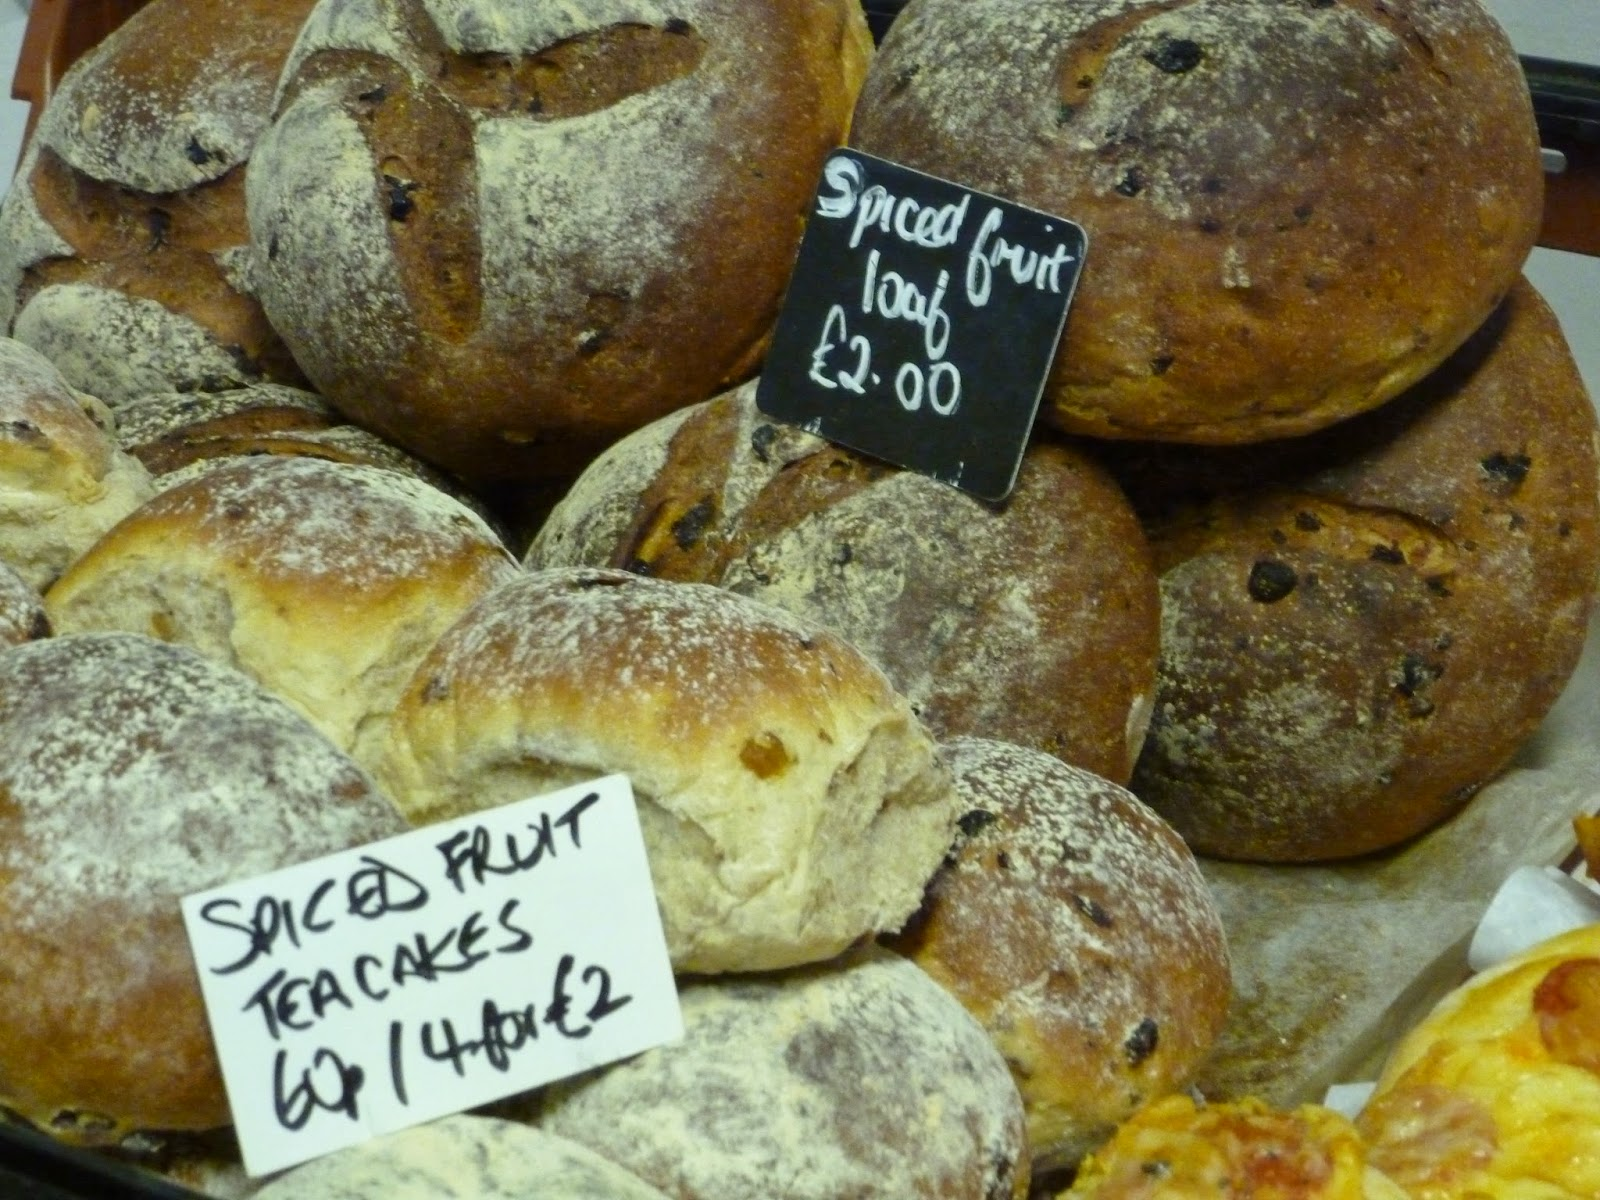 Farmers market stall fresh bread spiced fruit loaf and spiced fruit teacakes